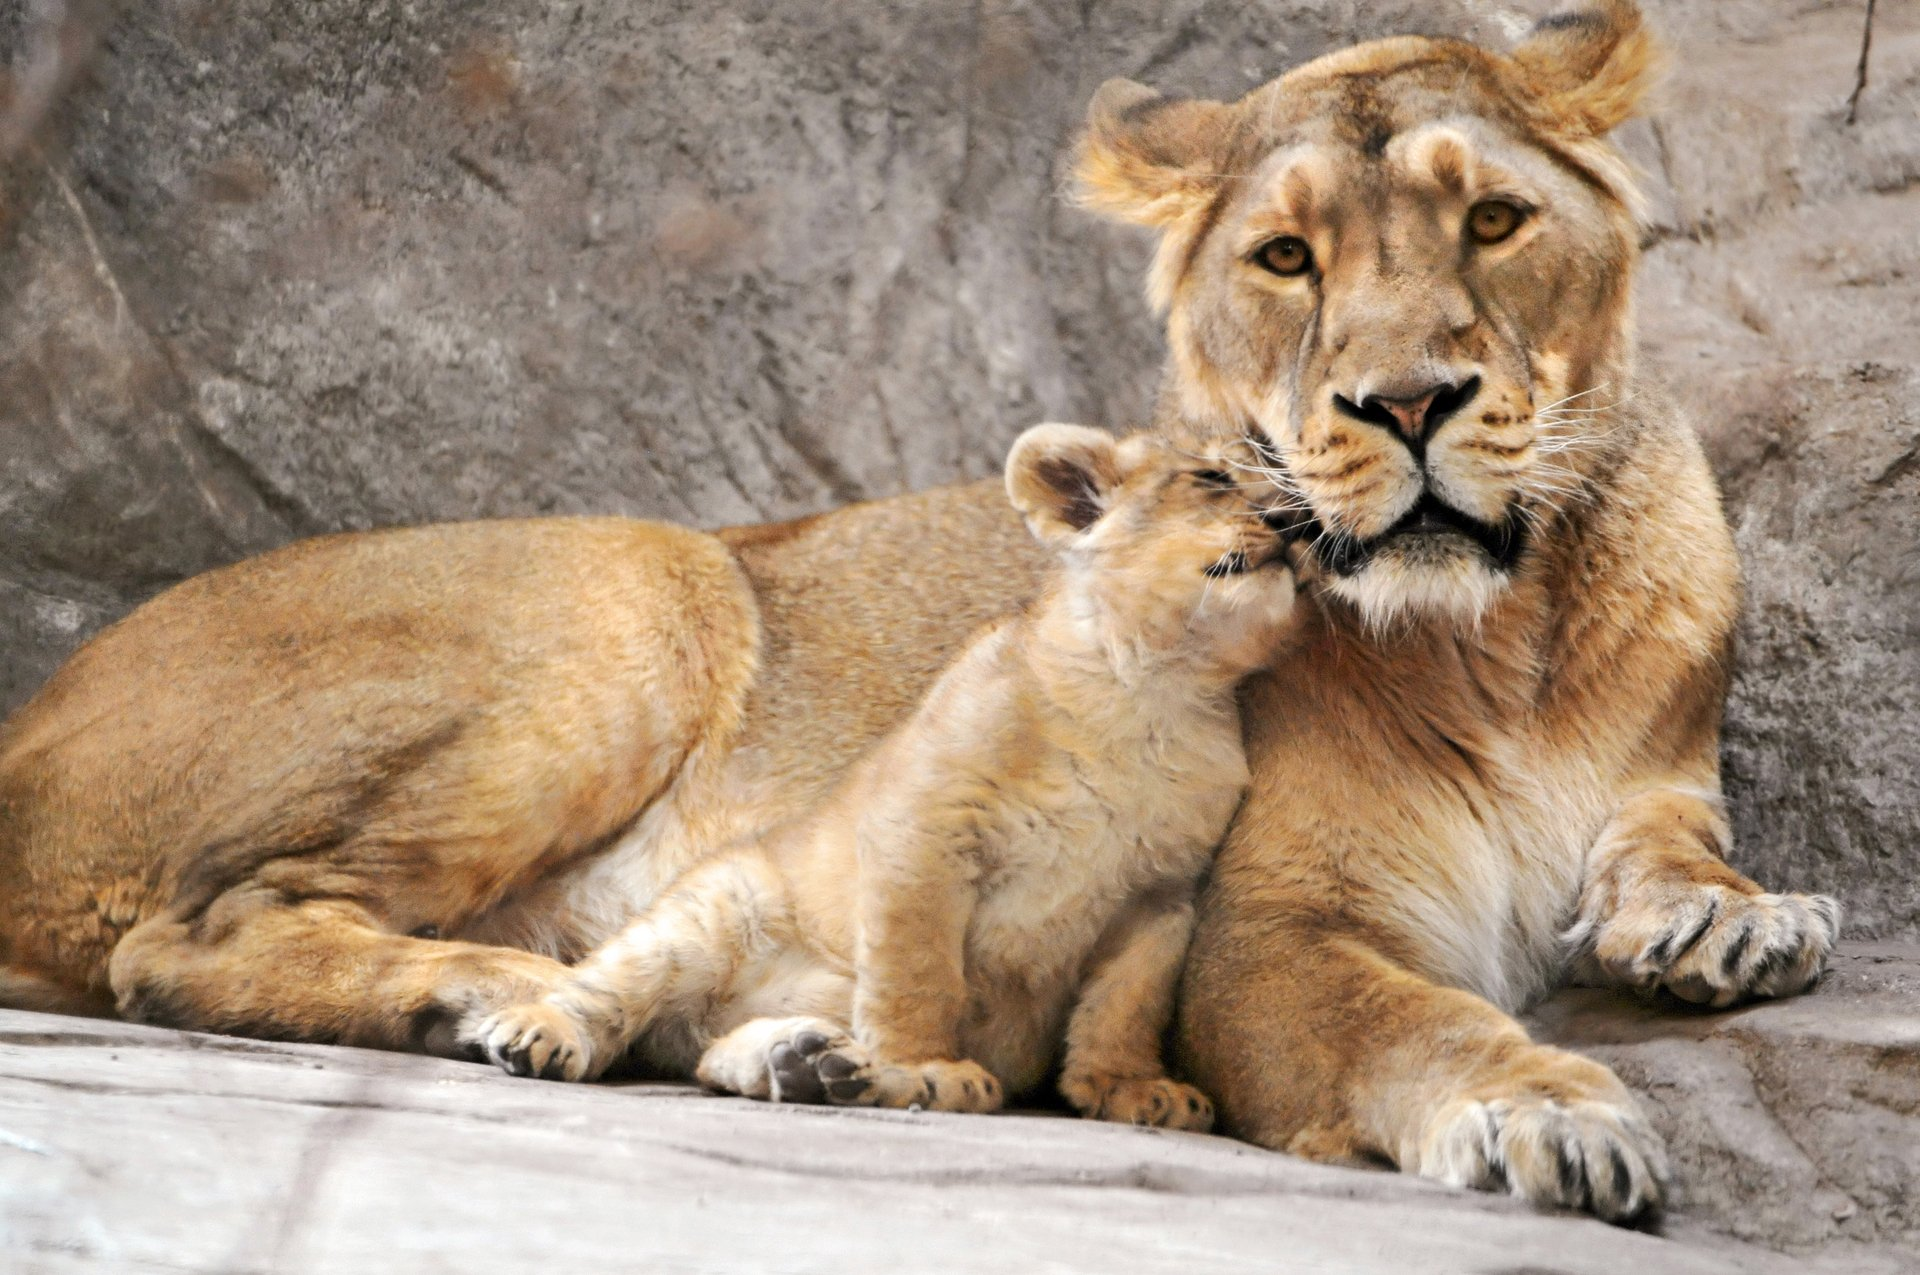 Animals Hd Wallpapers 2015 Funny Kissing Hugging Baby: Lion Full HD Fond D'écran And Arrière-Plan